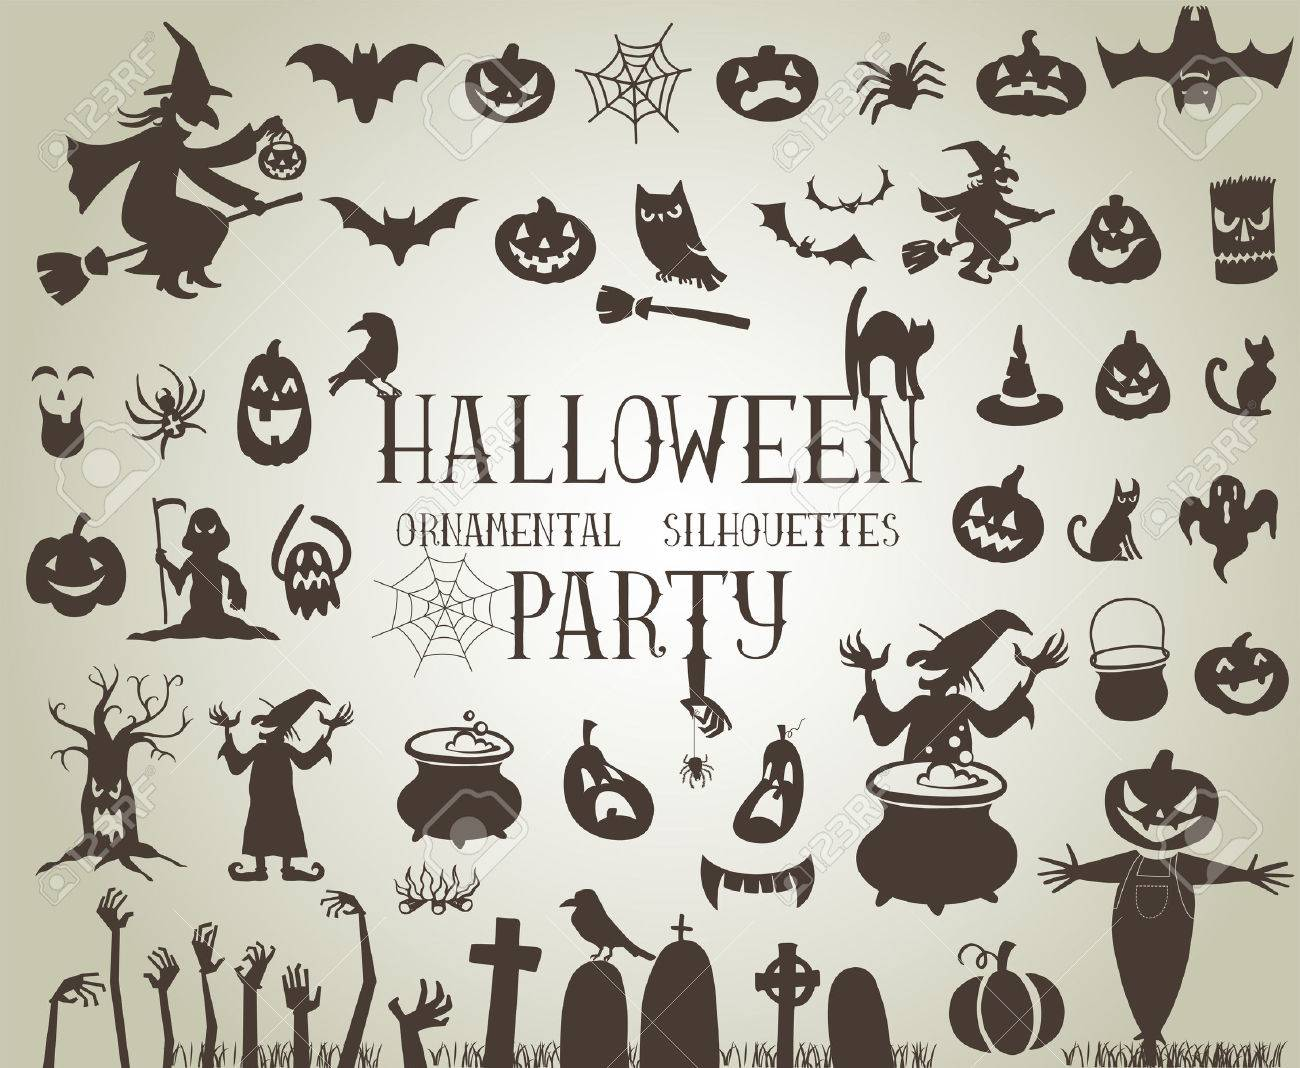 Set of silhouettes for Halloween party - 44942203